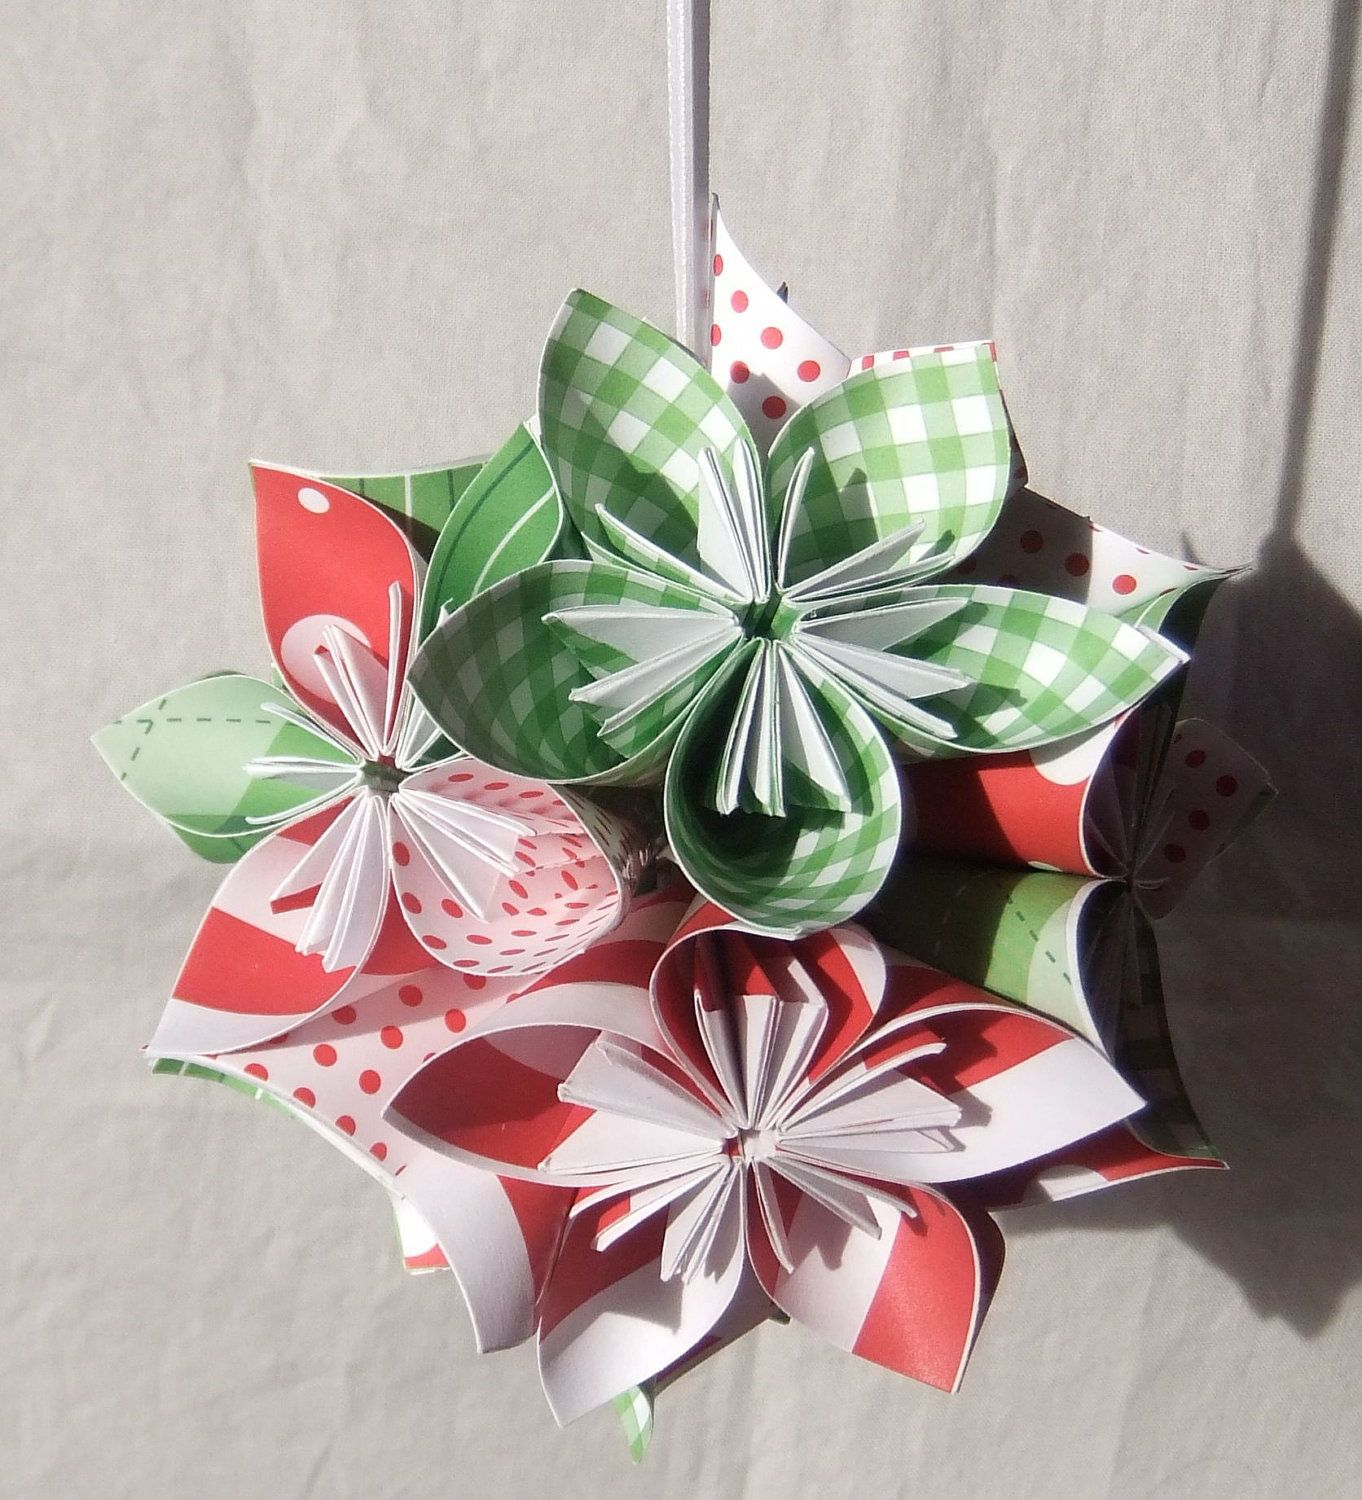 origami star ornaments | Origami Christmas Ornaments ... - photo#44